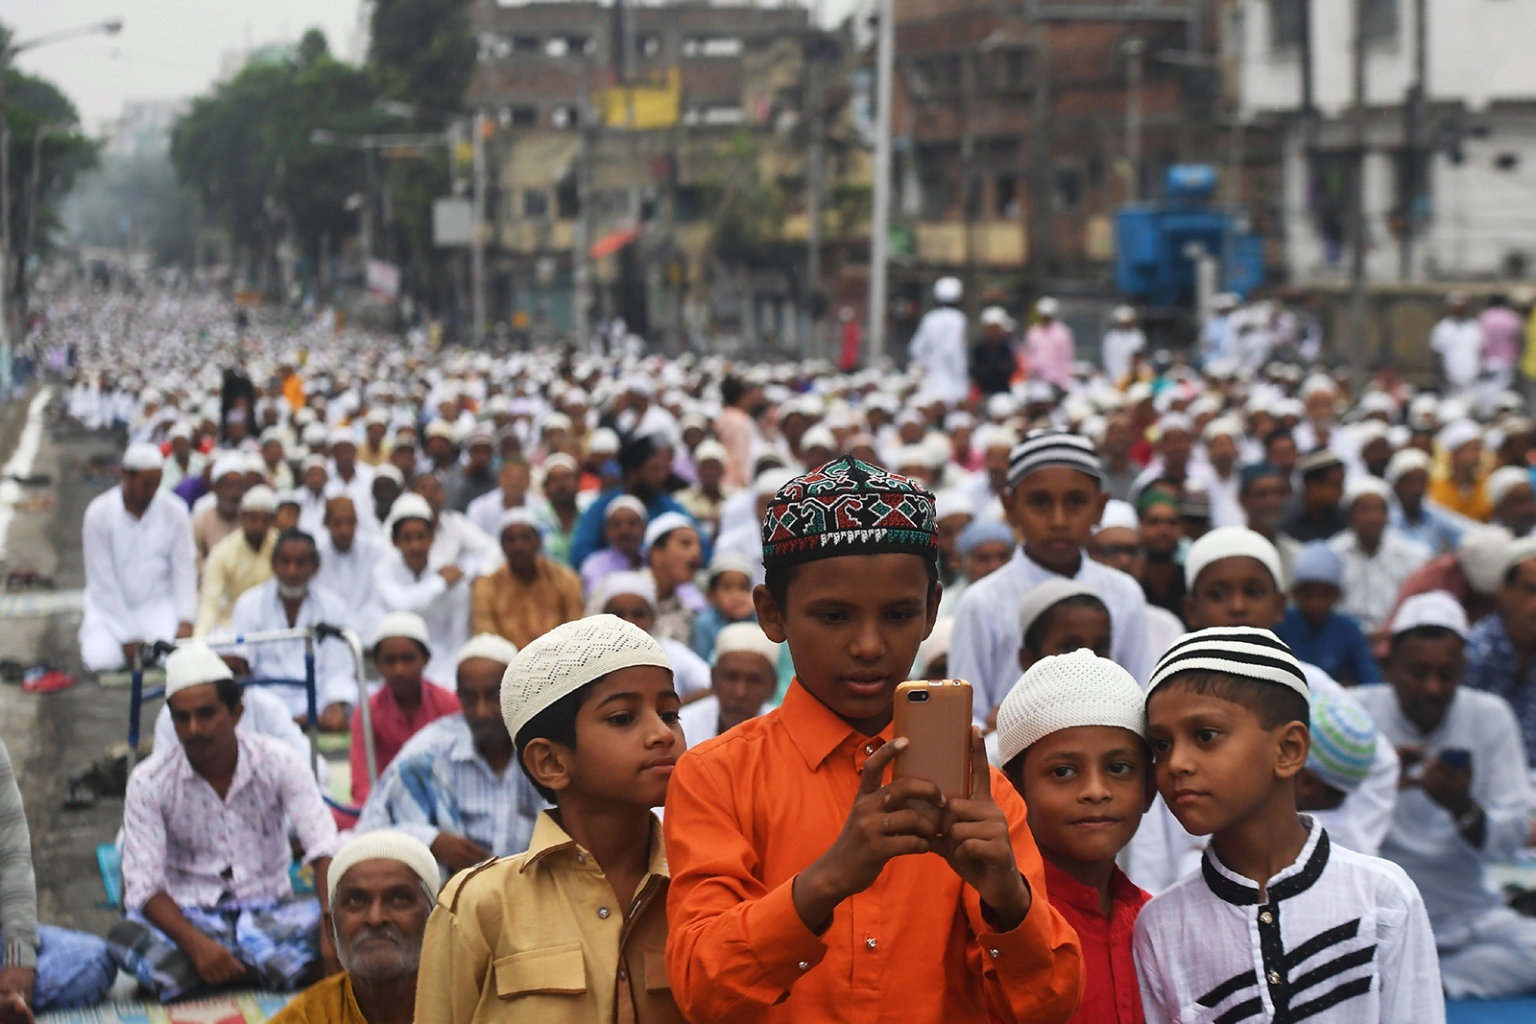 Young Muslims gather around a phone after participating in a special prayer organized to celebrate Eid al-Adha in Kolkata on Aug. 12. Muslims around the world celebrate the feast of sacrifice, the second of two Islamic holidays that mark the end of the annual hajj to Mecca. DIBYANGSHU SARKAR/AFP/Getty Images